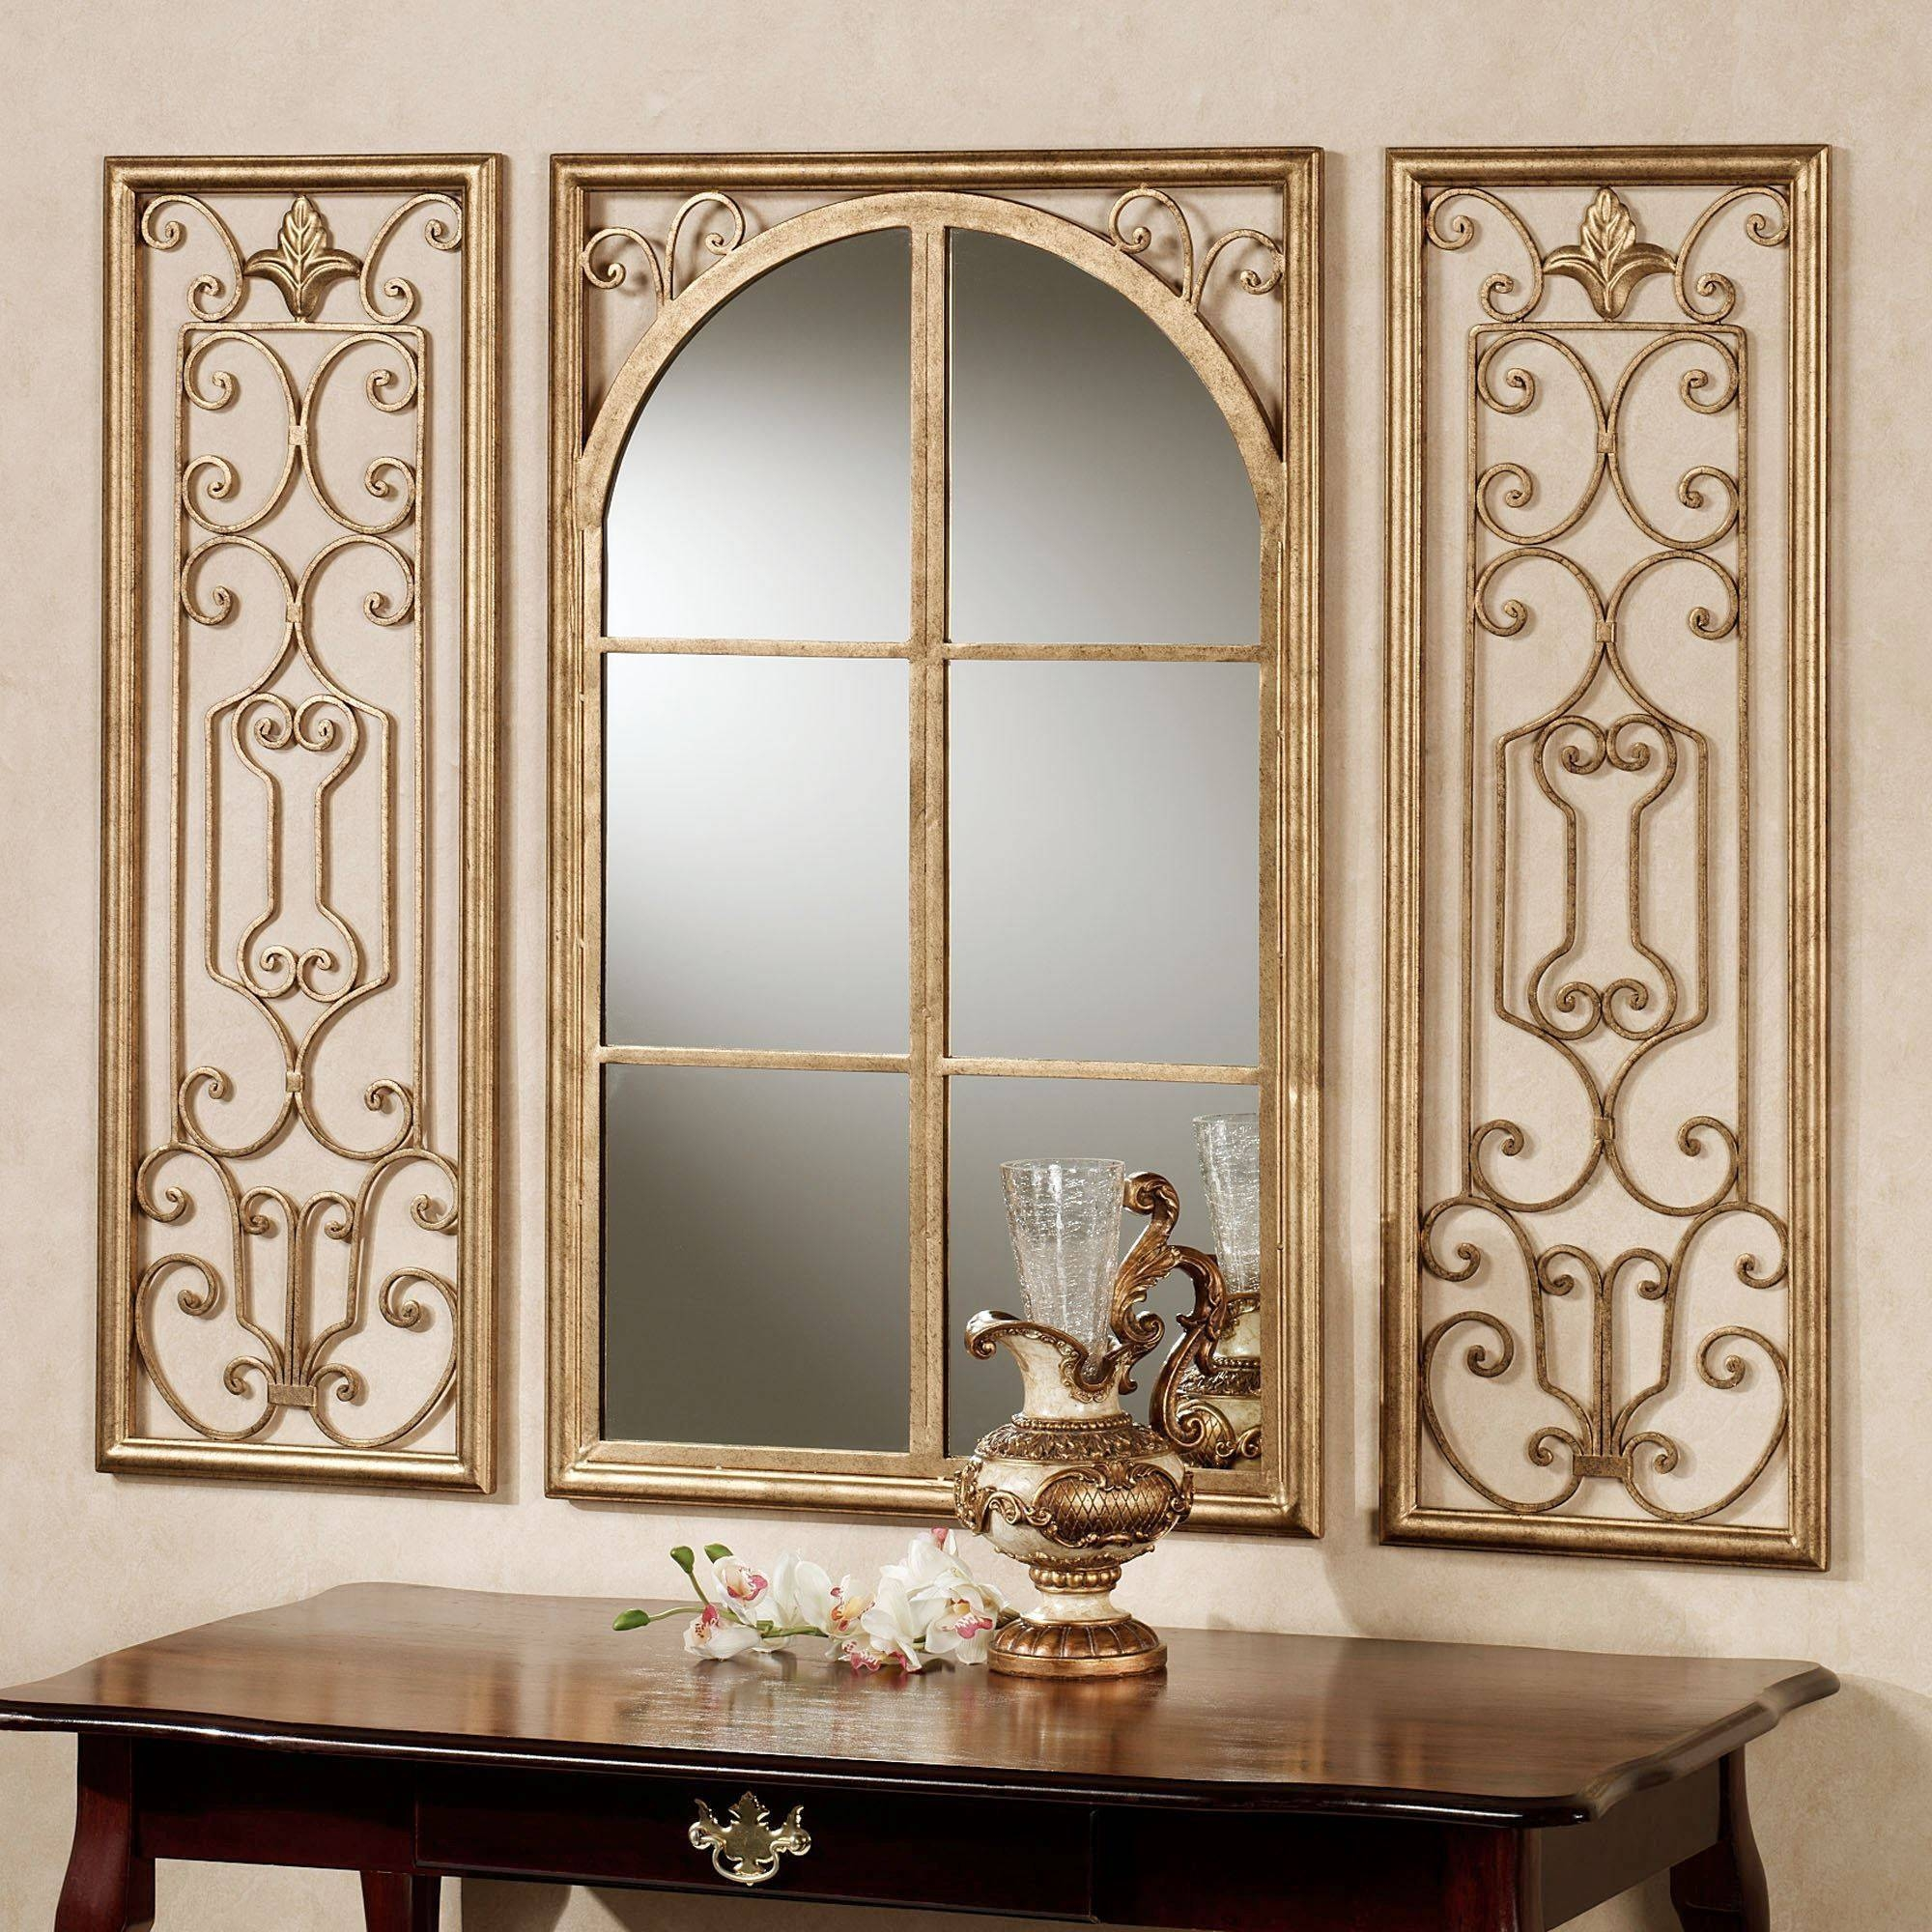 Provence Bronze Finish Wall Mirror Set with Large Bronze Mirrors (Image 11 of 15)